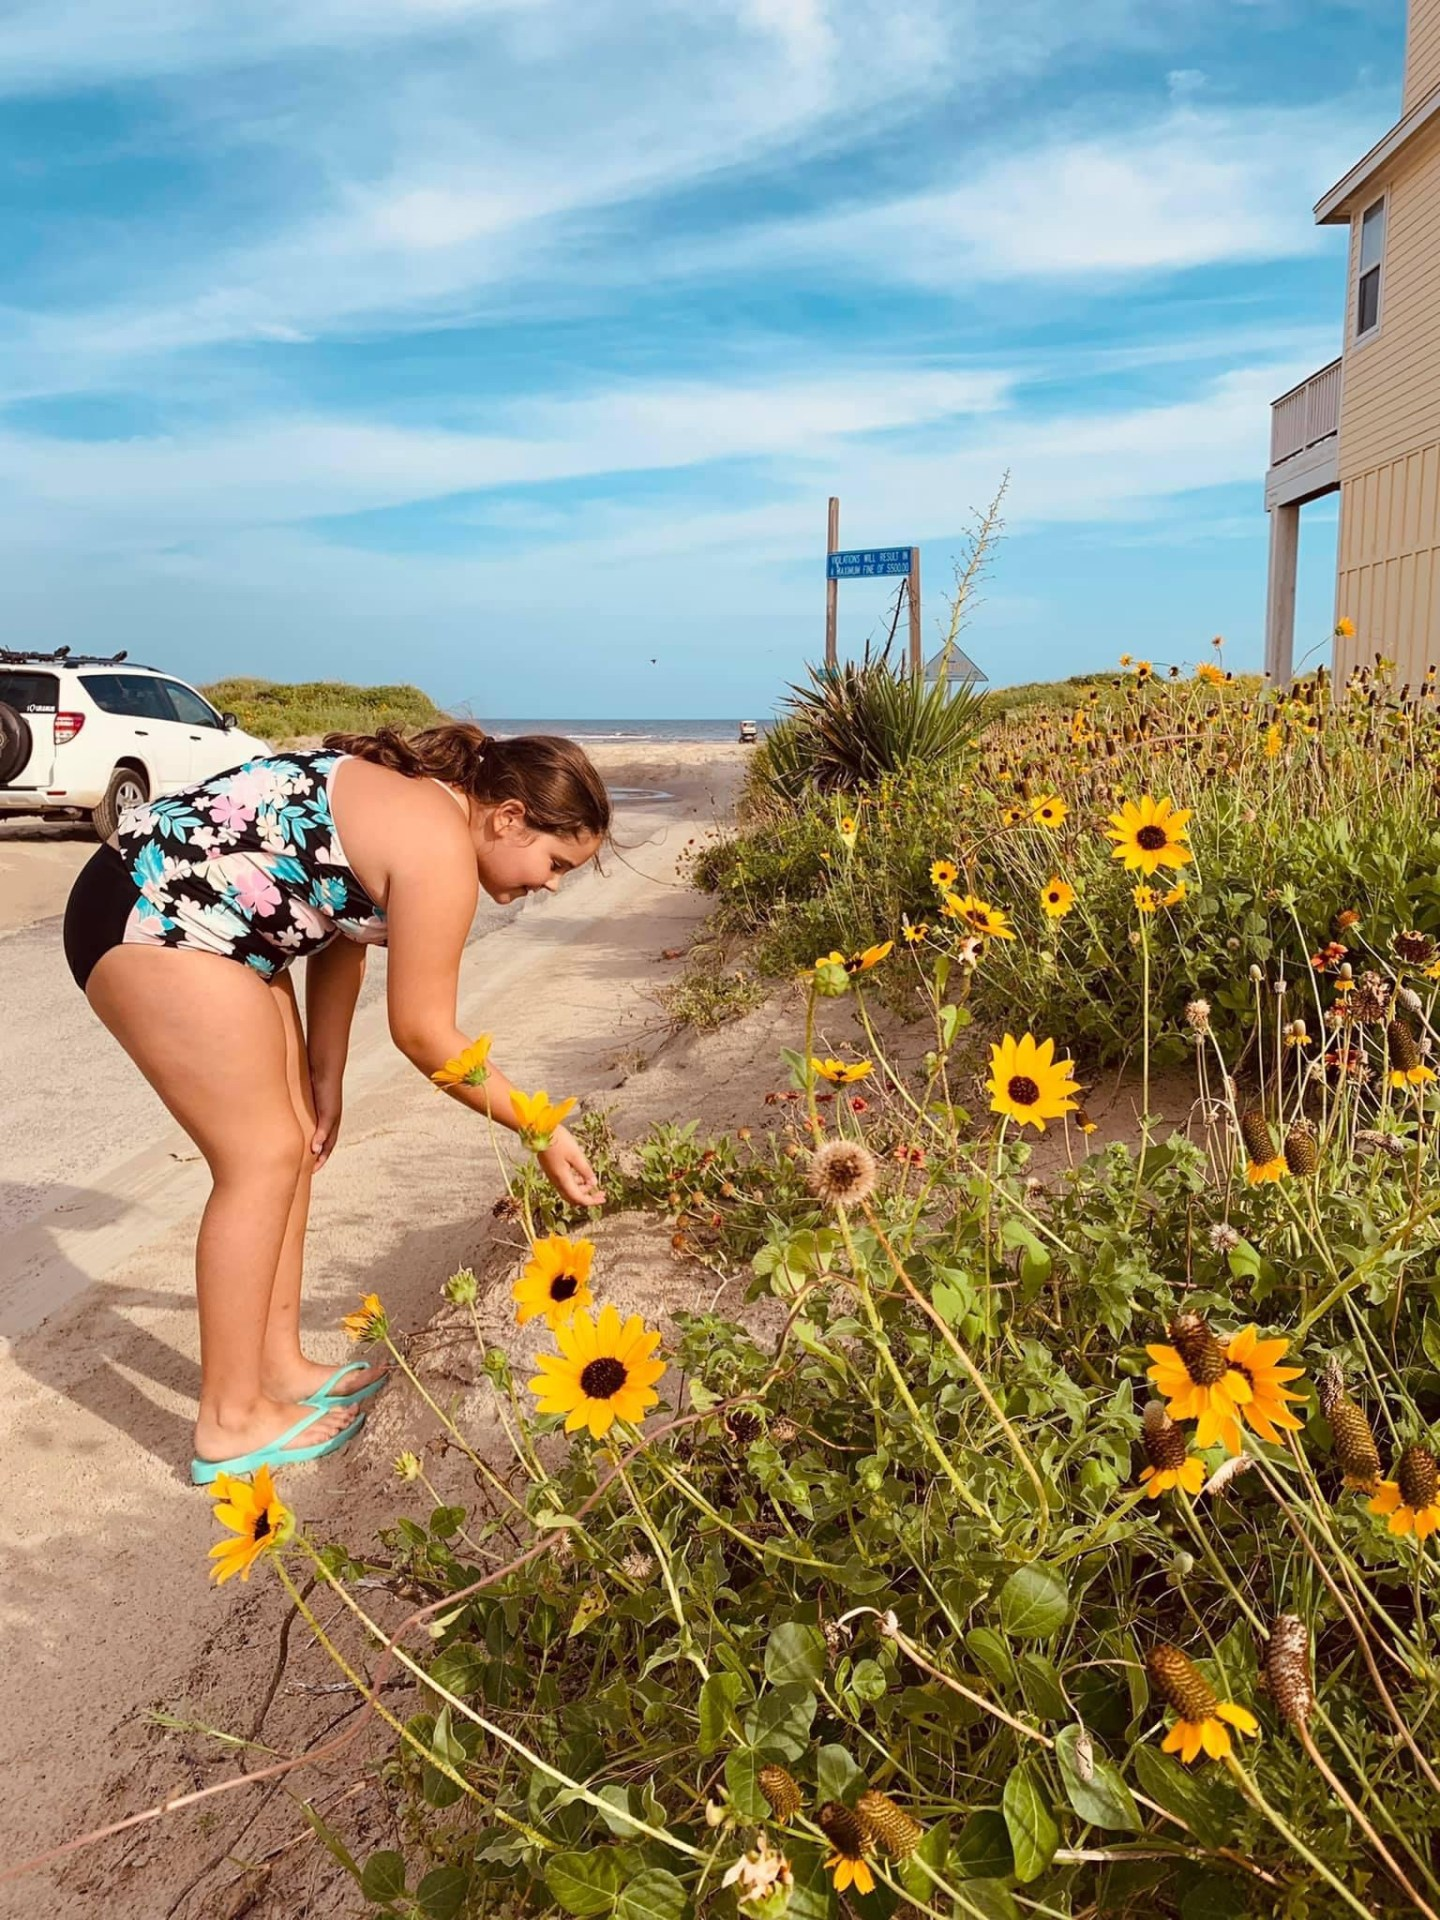 Taking the time to stop and smell the flowers at the beach.